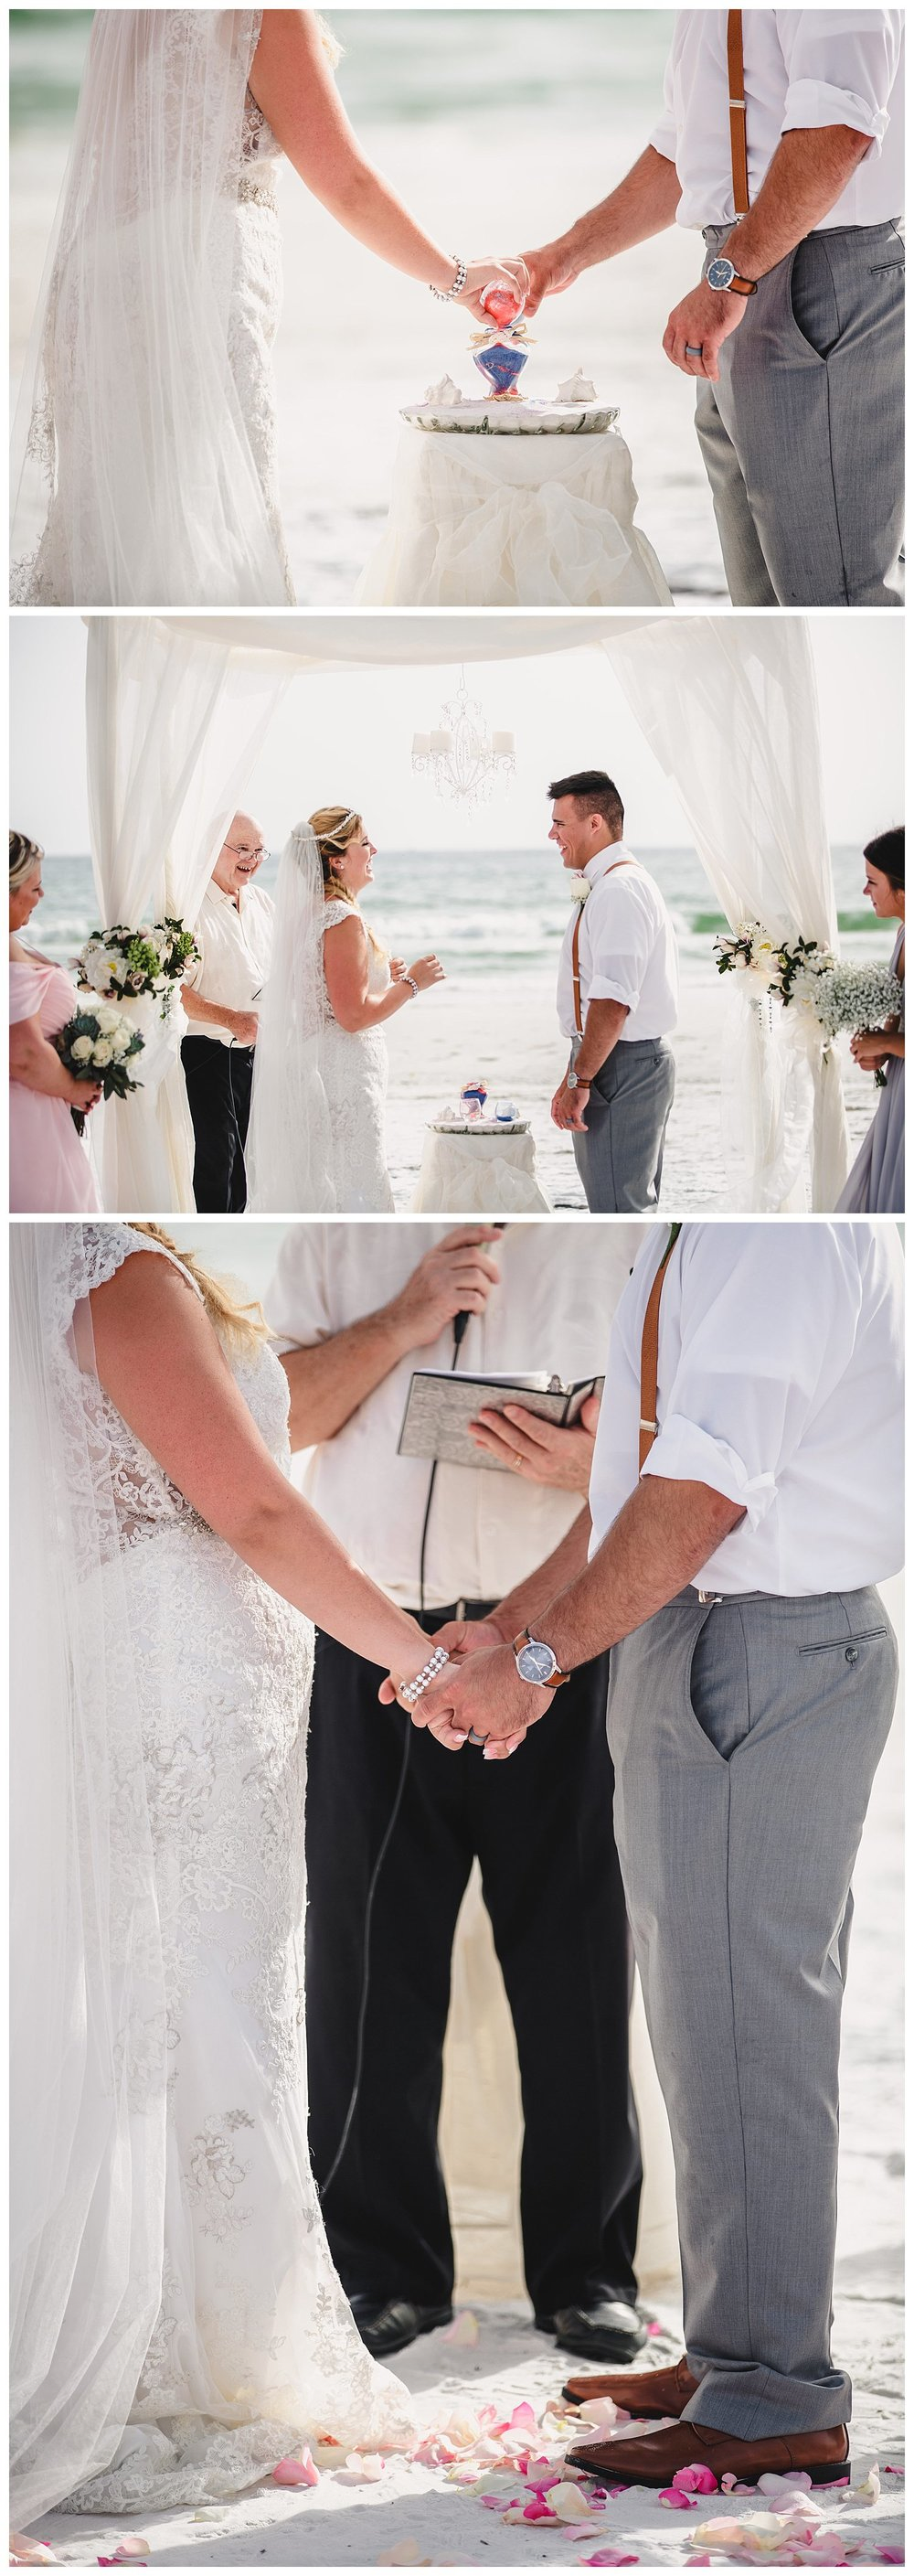 Kelsey_Diane_Photography_Destination_Wedding_Sarasota_Florida_Beach_Wedding_Alex_Austin_0651.jpg